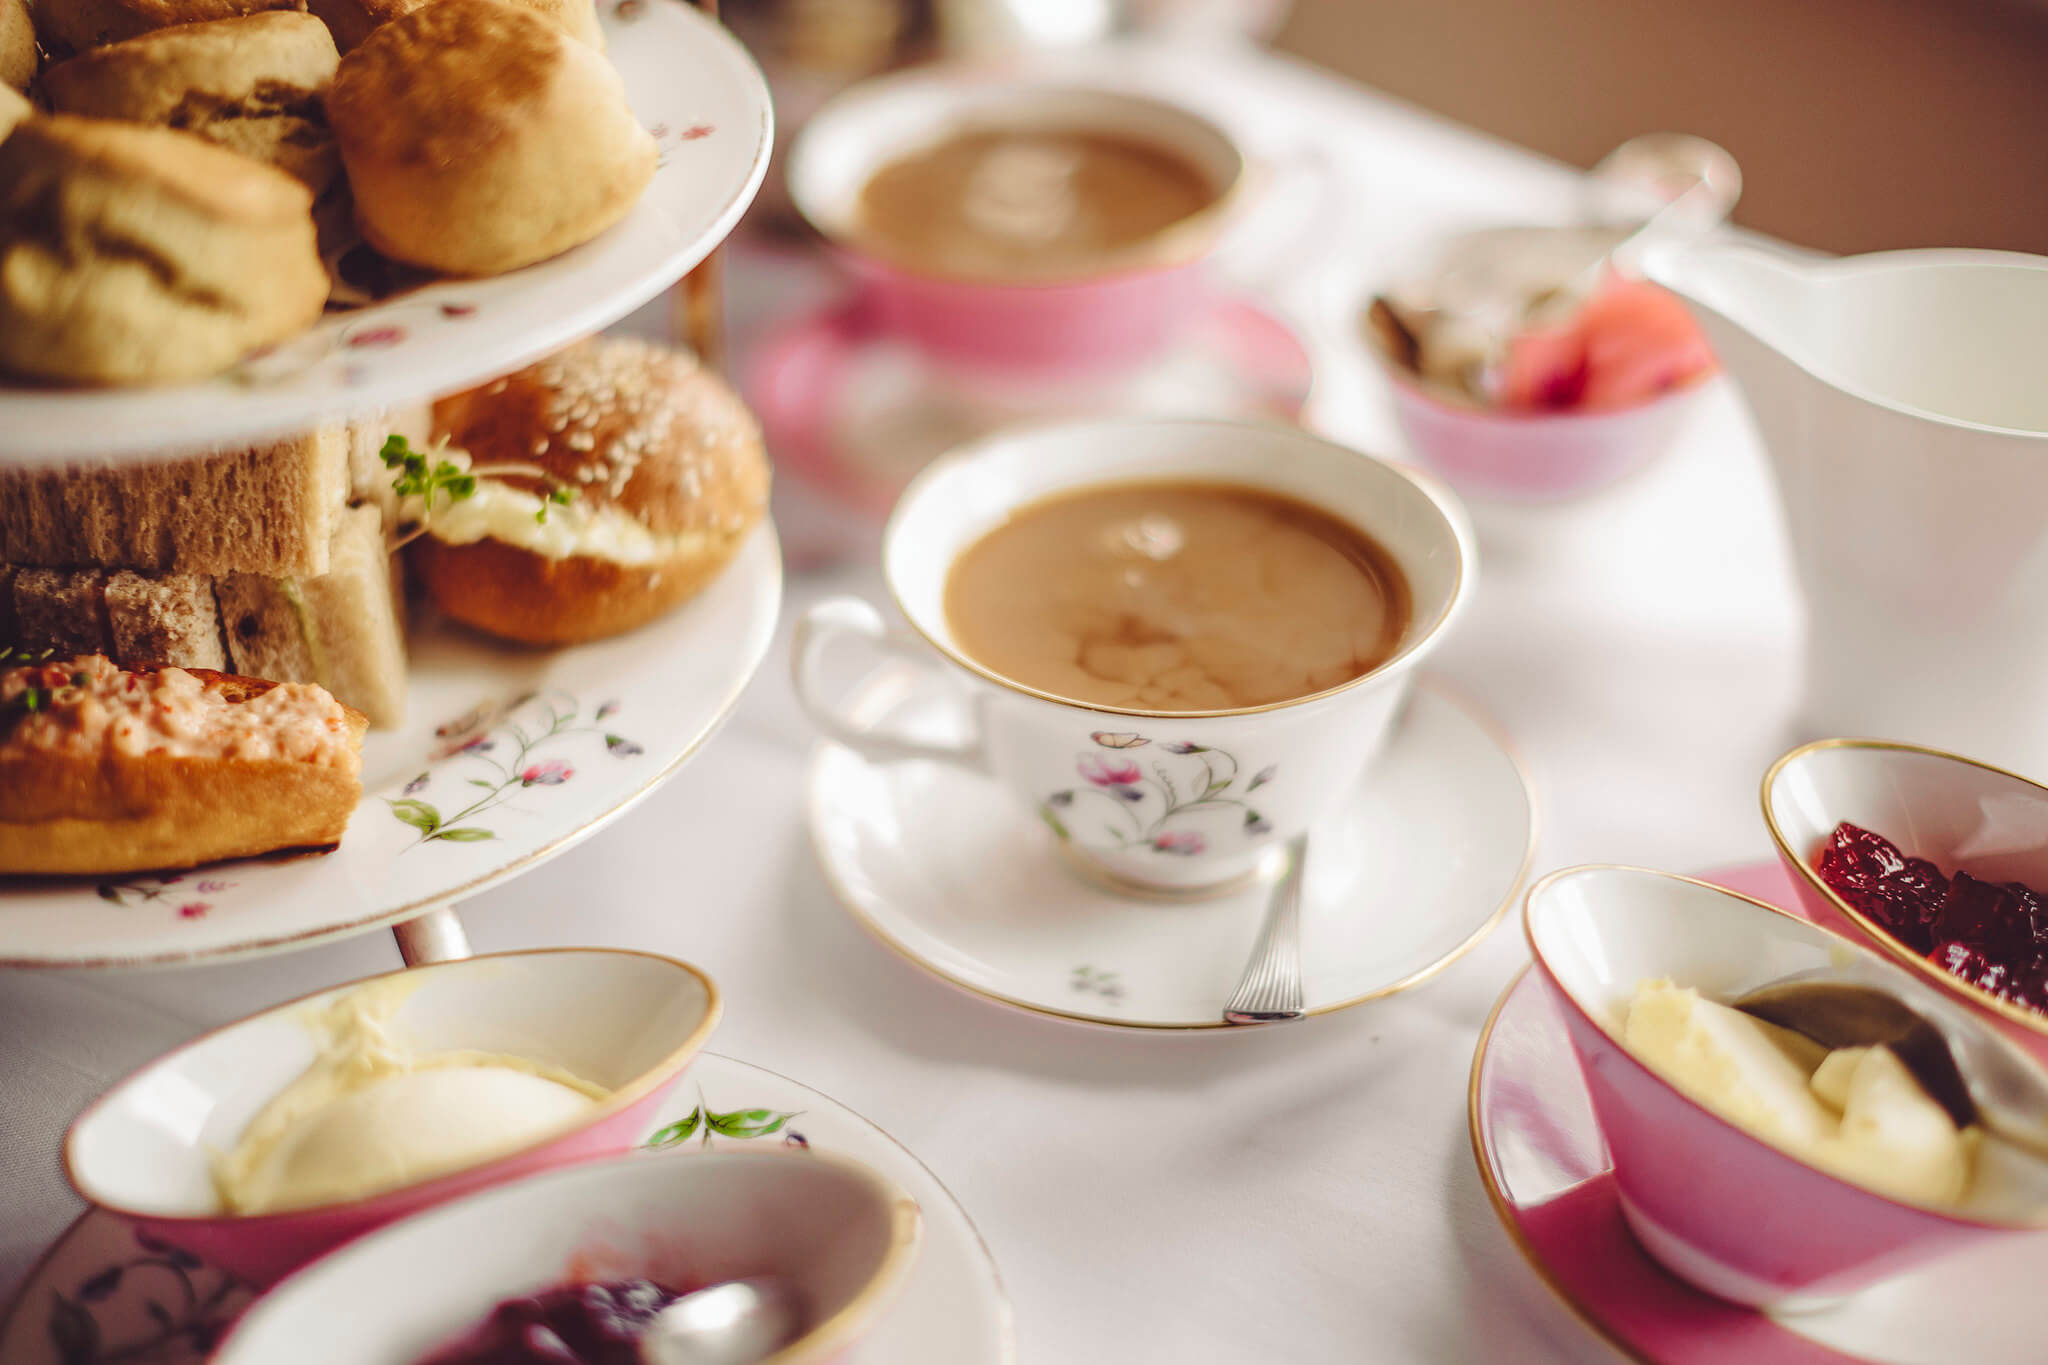 Afternoon tea laid out on a table.